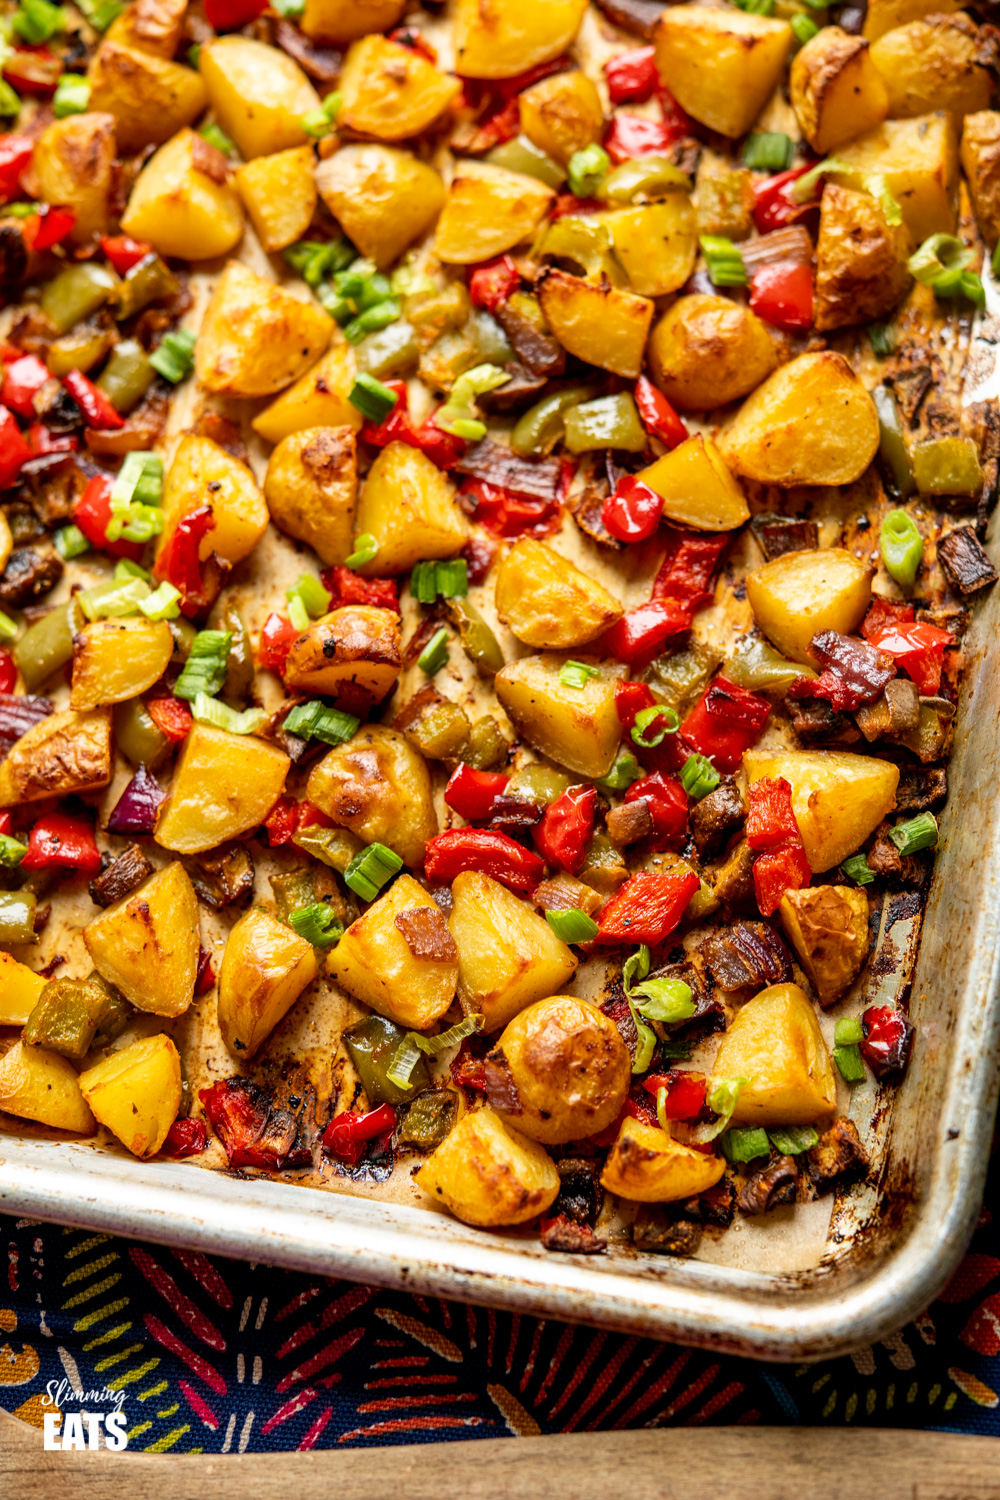 syn free breakfast potatoes on tray with patterned towel